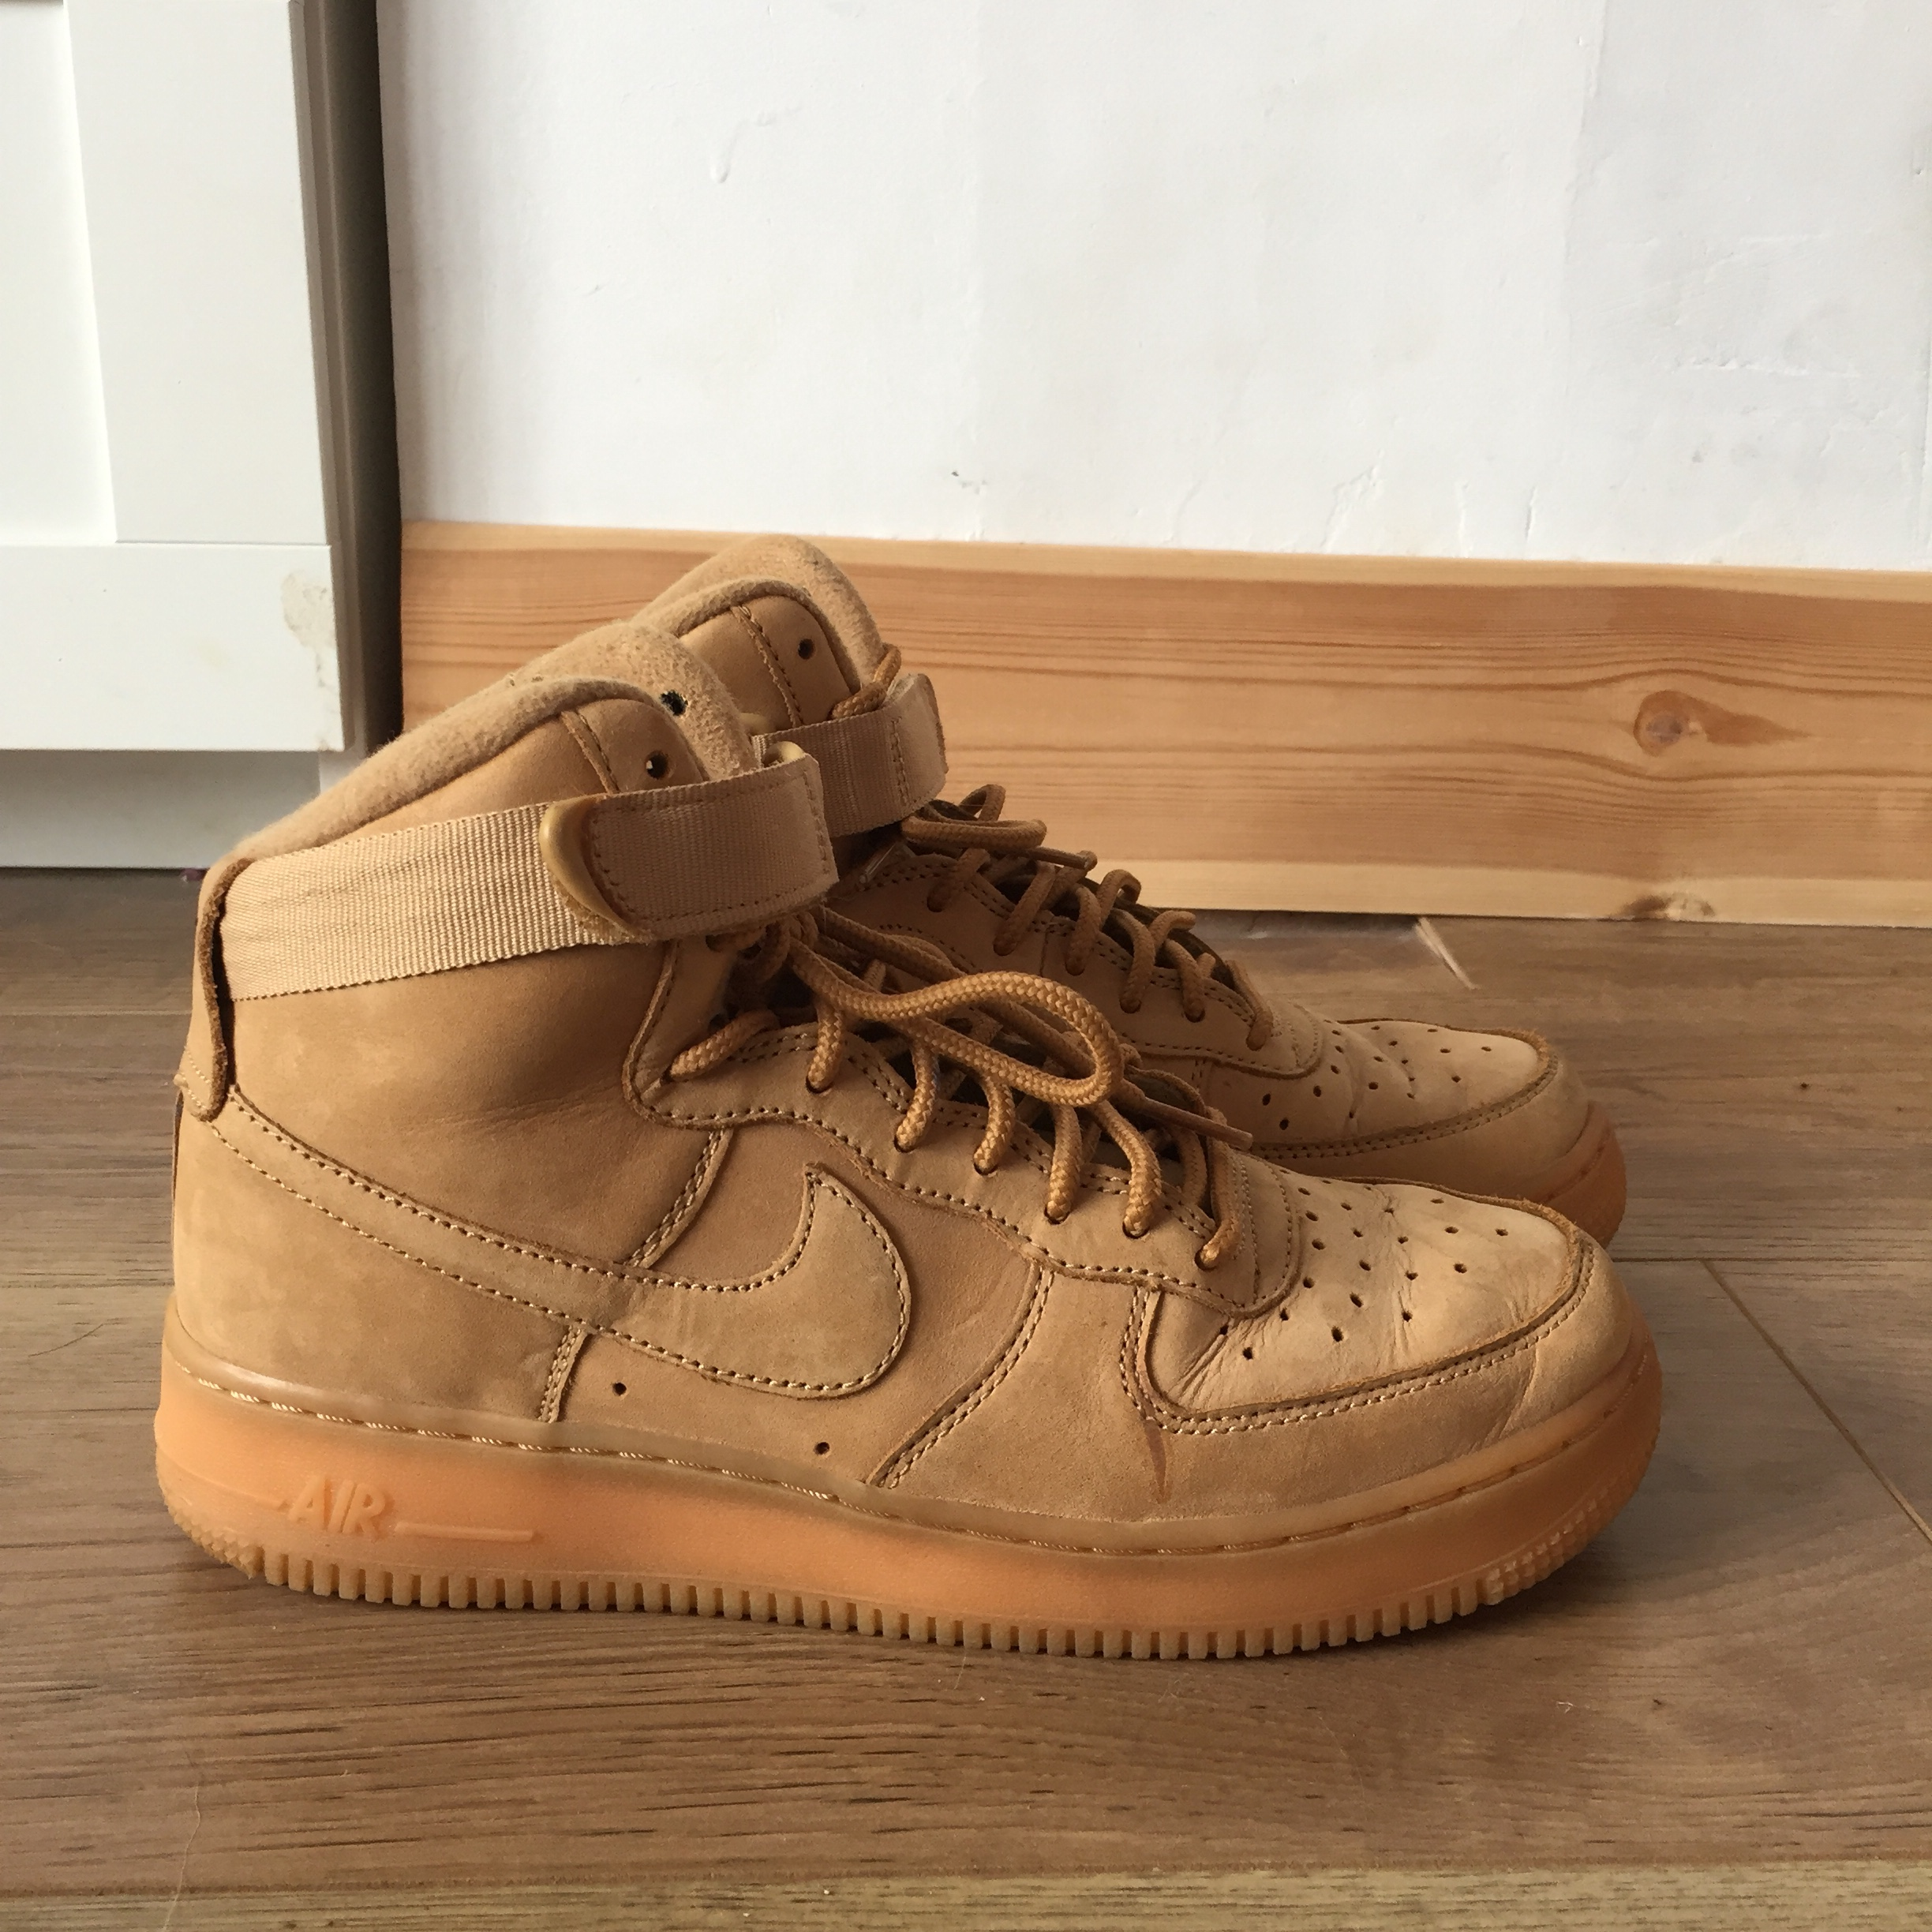 la moitié c7bfe 3f7cb Nike Air Force 1 high tops camel/tan colour Worn... - Depop